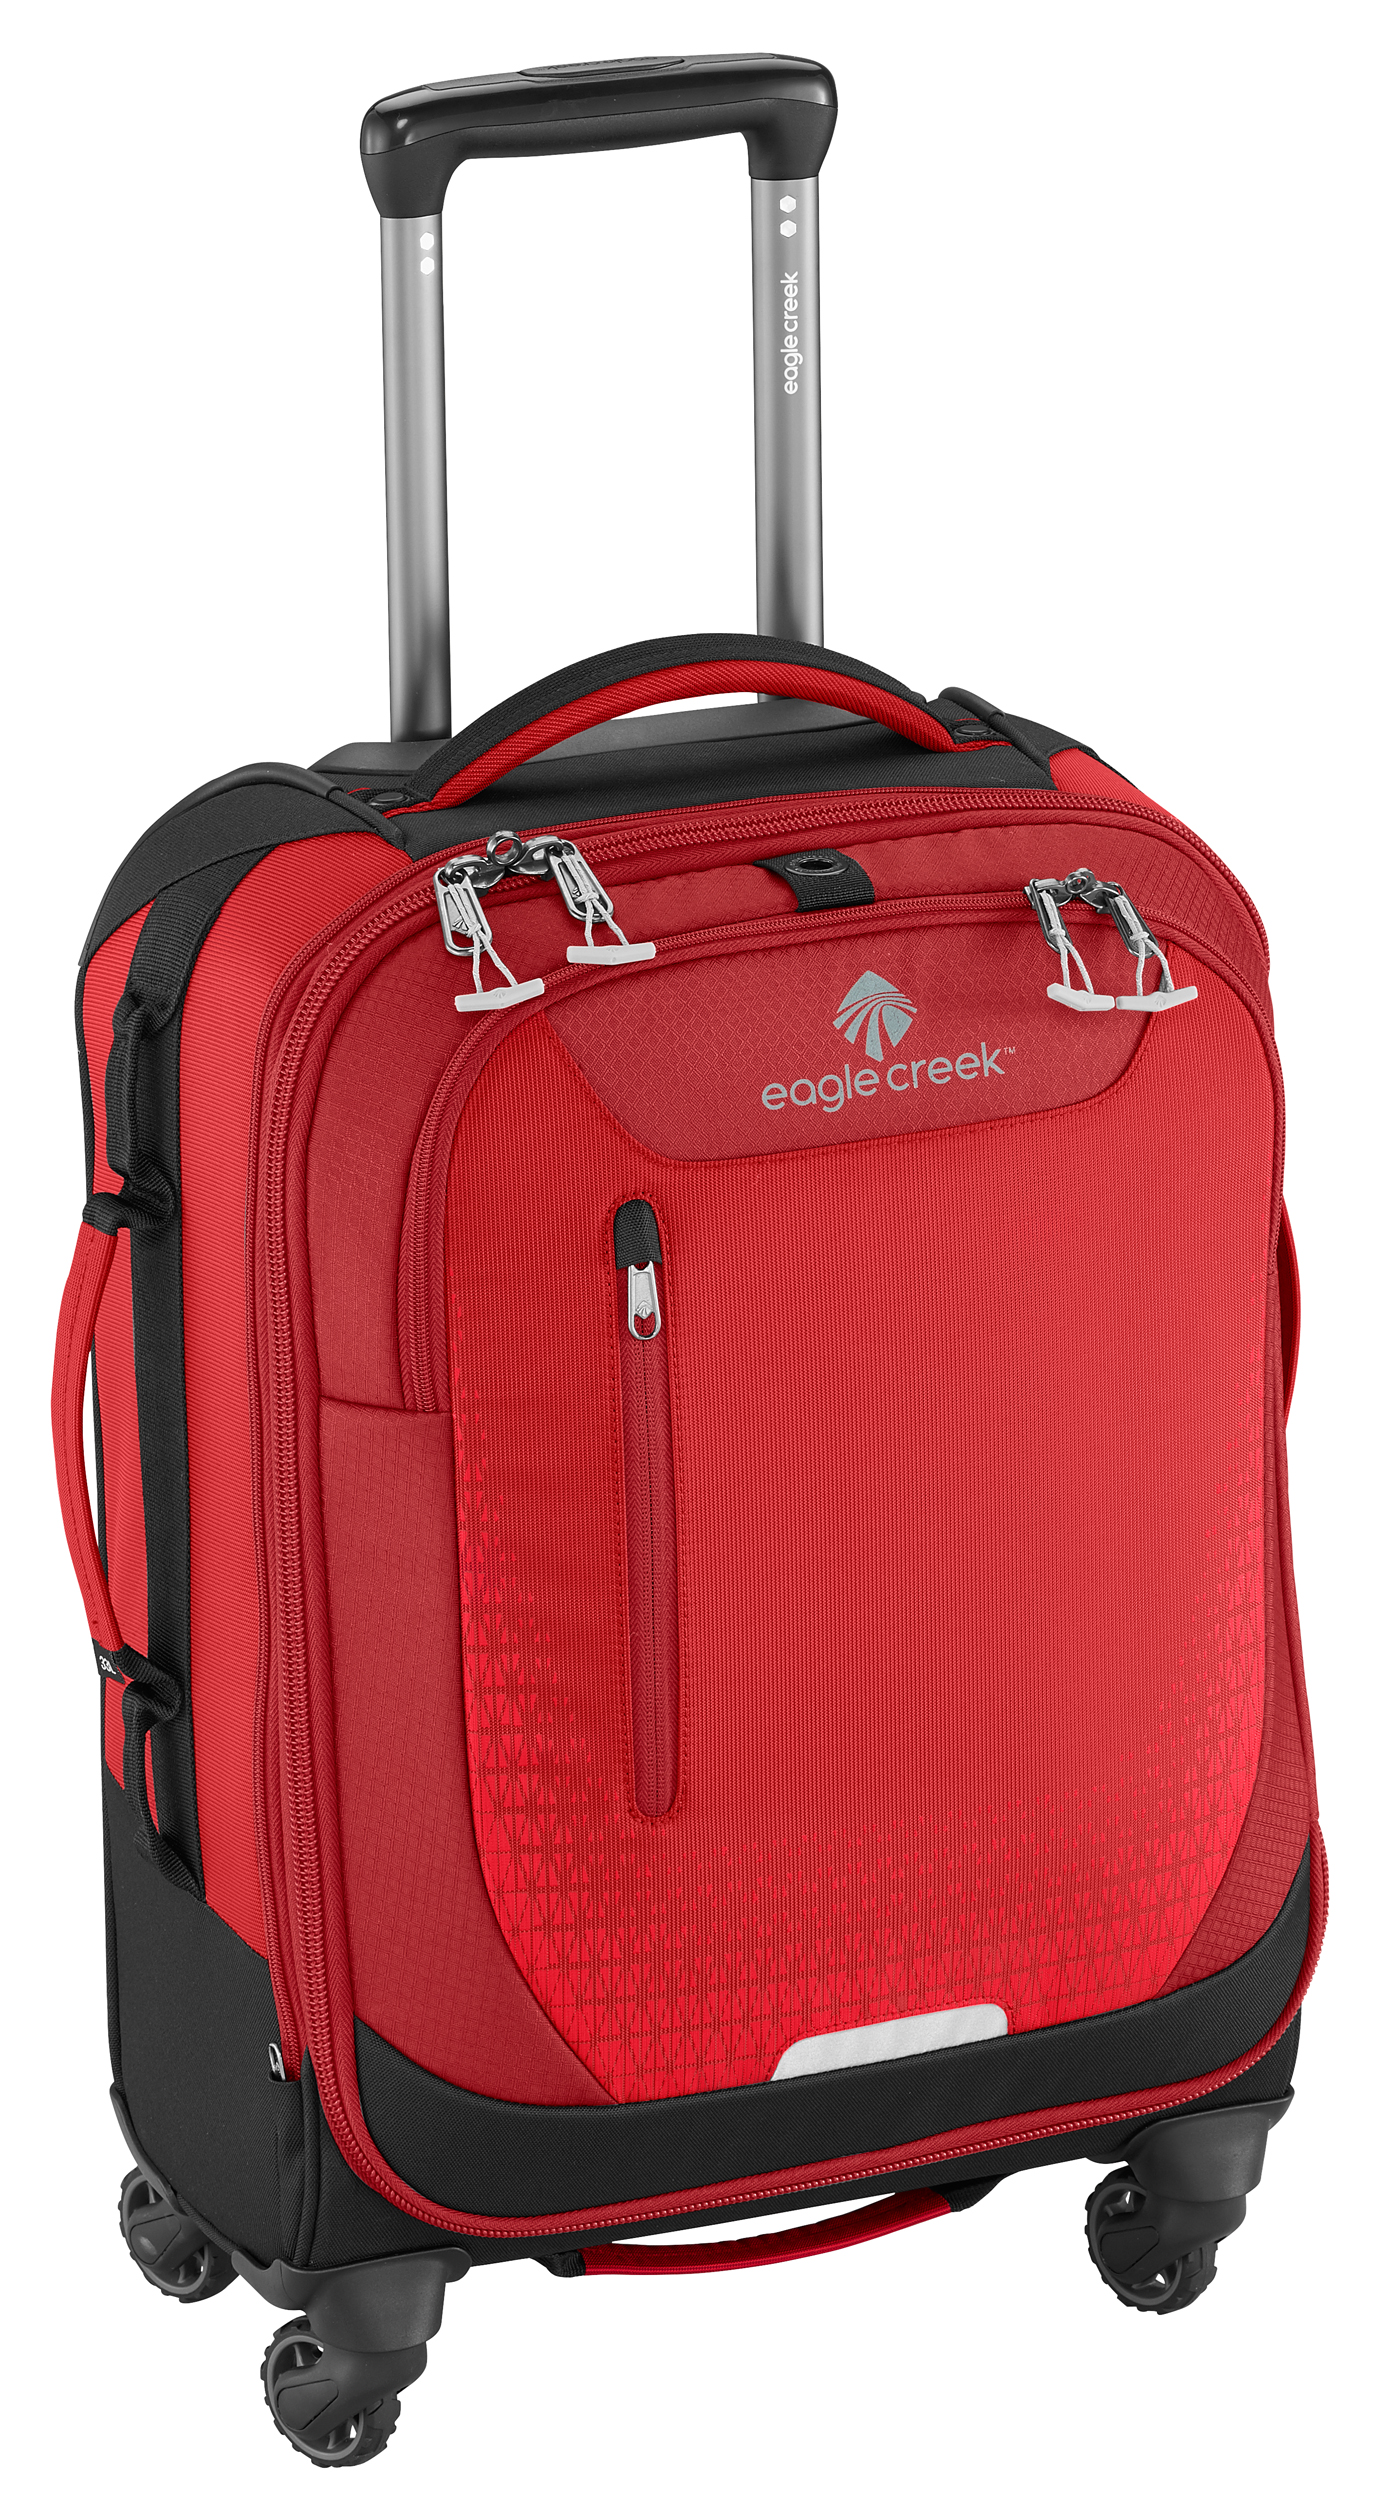 Expanse™ Awd International Carry-On by Eagle Creek (Color: Volcano Red)